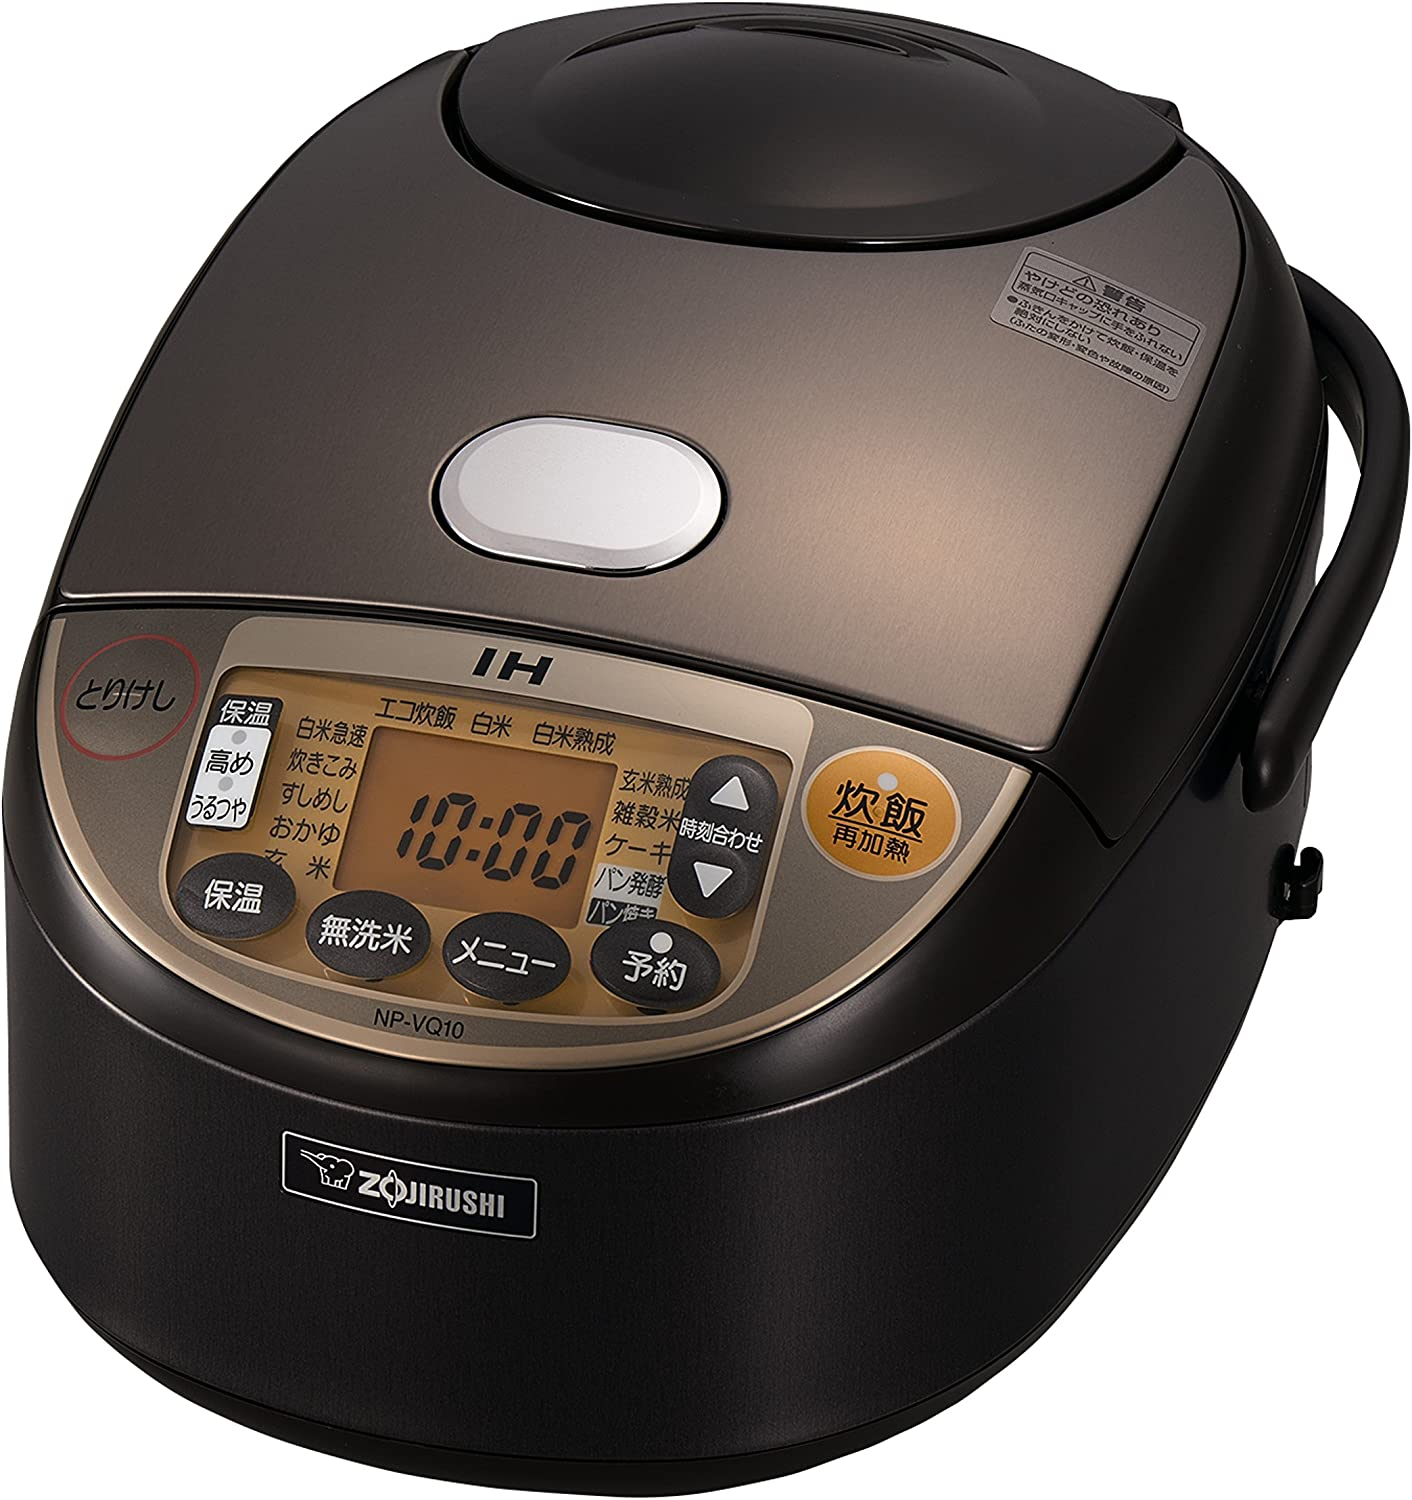 Zojirushi rice cooker IH-type extremely cook 5.5 Go Brown NP-VQ10-TA